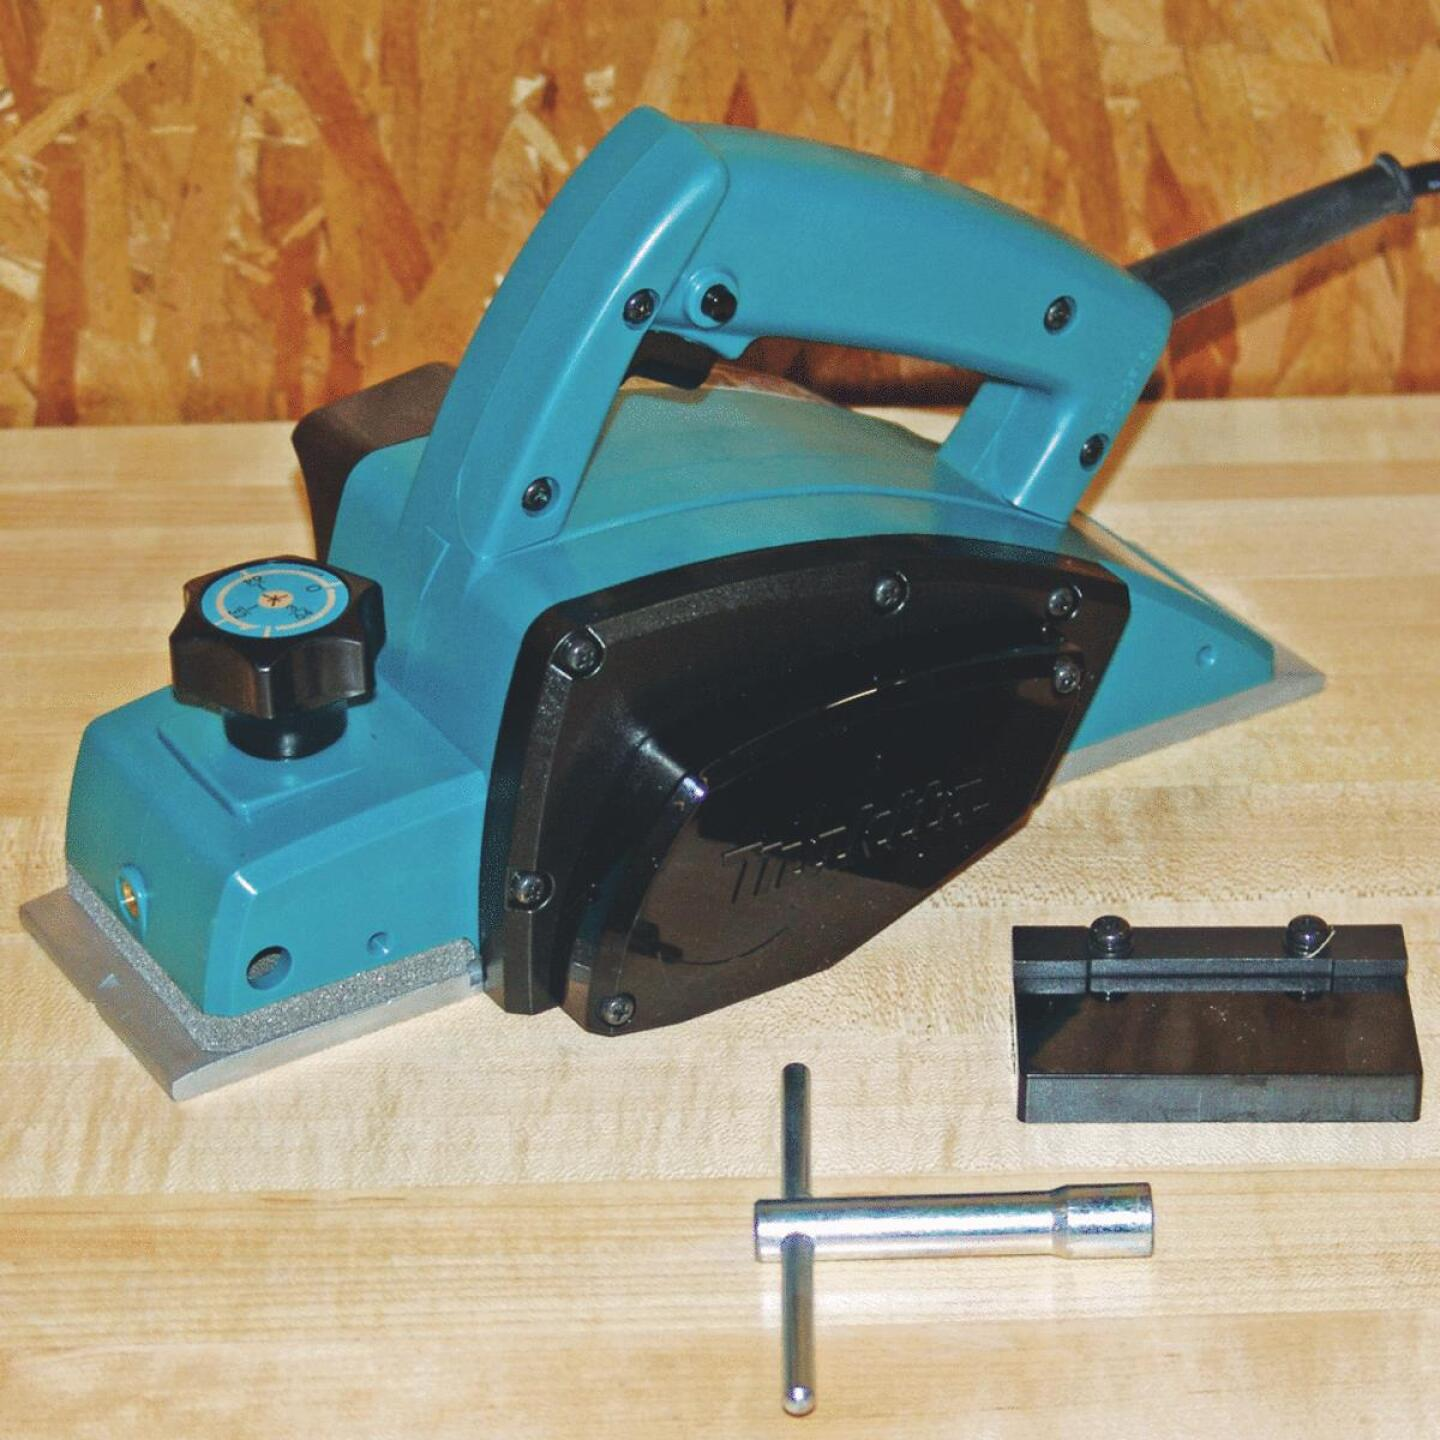 Makita 6.5A 3-1/4 In. 3/32 In. Planing Depth Planer Image 4